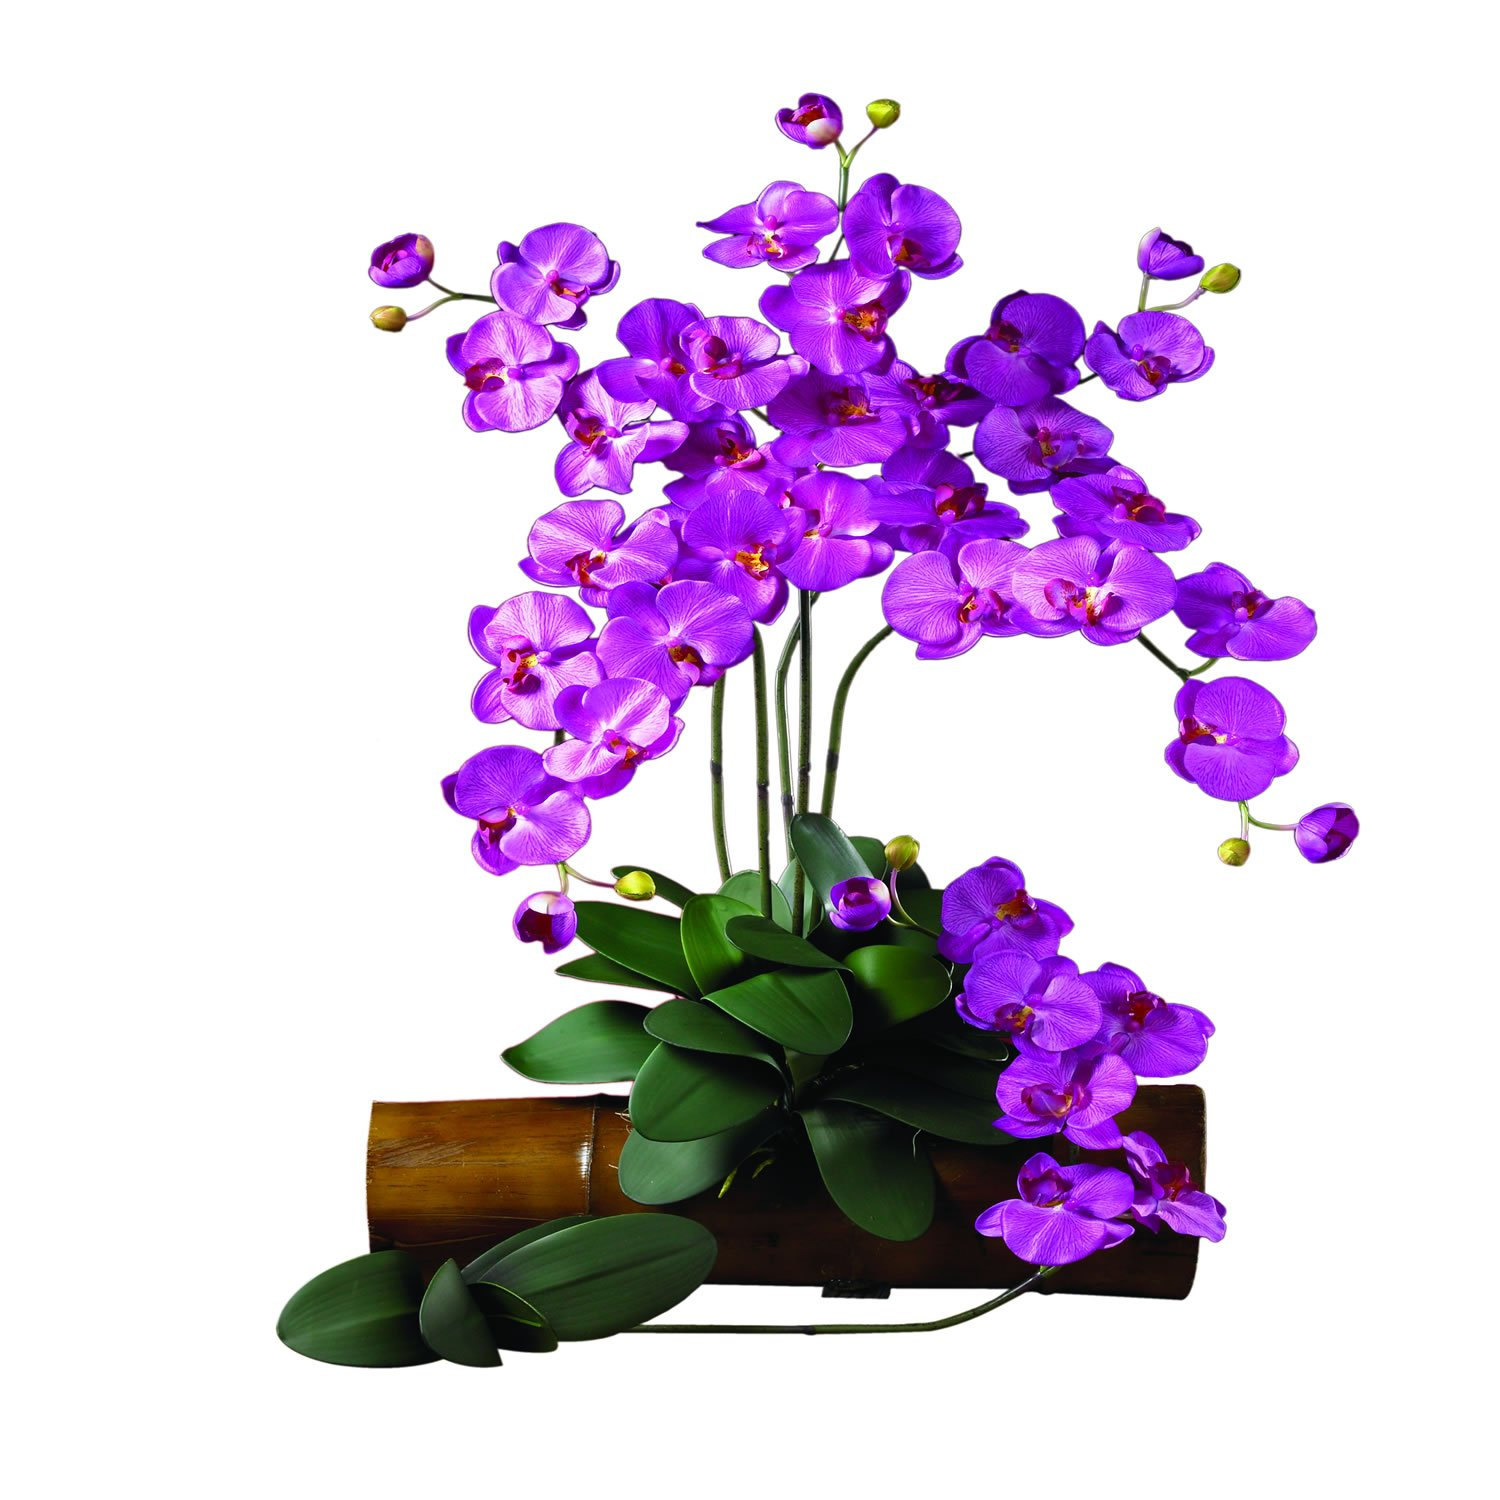 Nearly Natural 2044-OR-12 Phalaenopsis Stem, Orchid, Set of 12